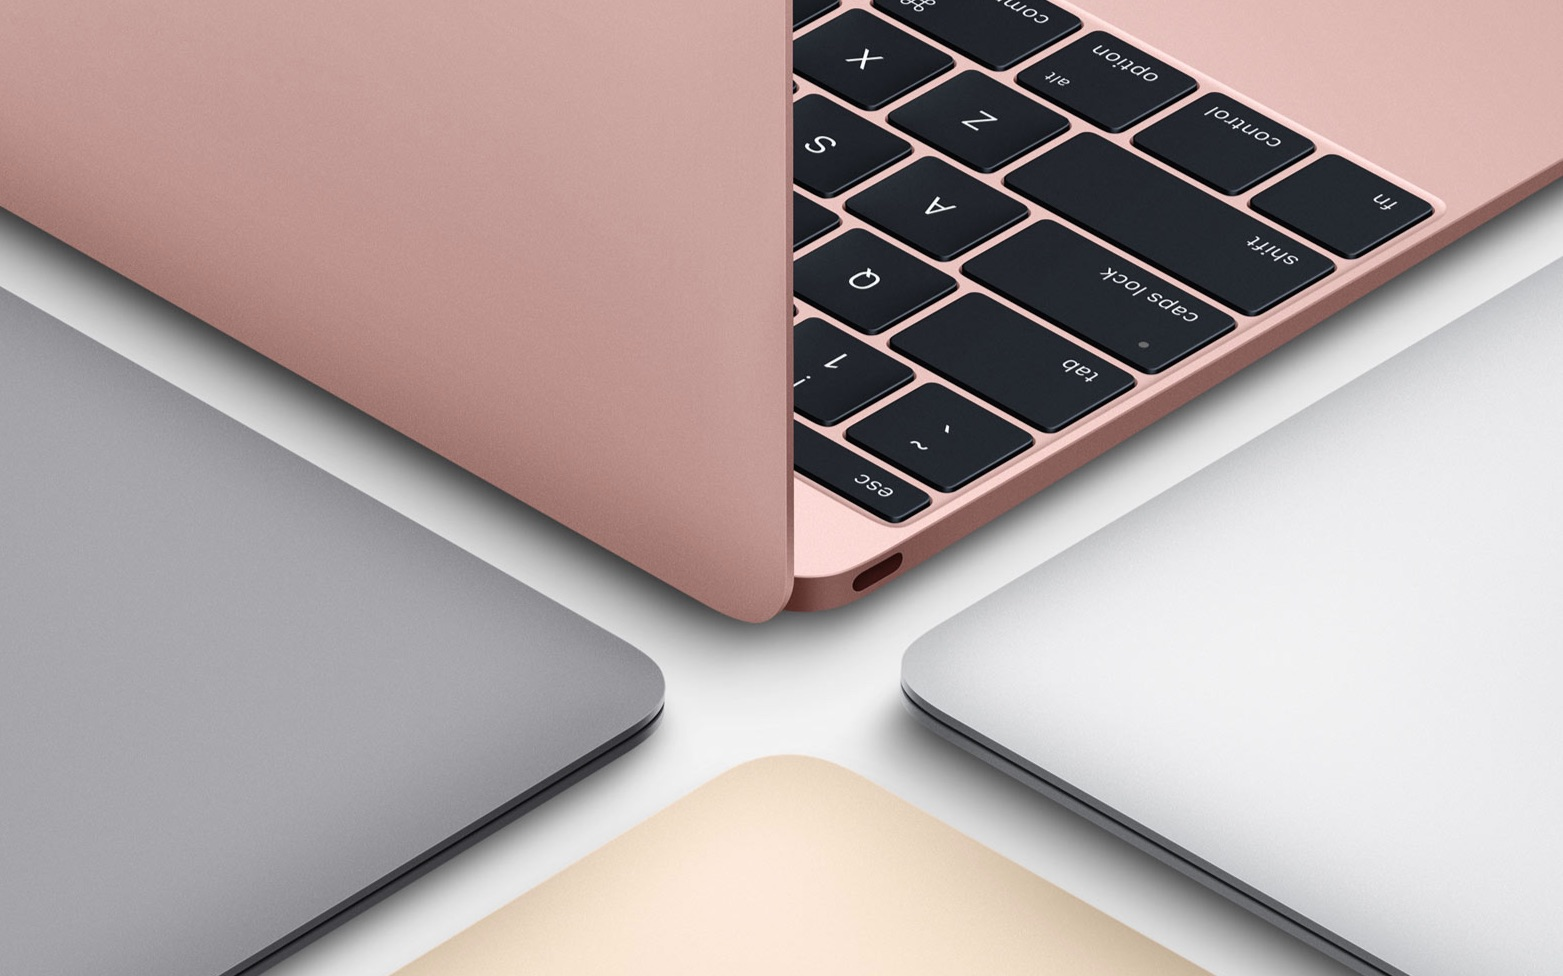 Apple New Macbook - Rose Gold in Color